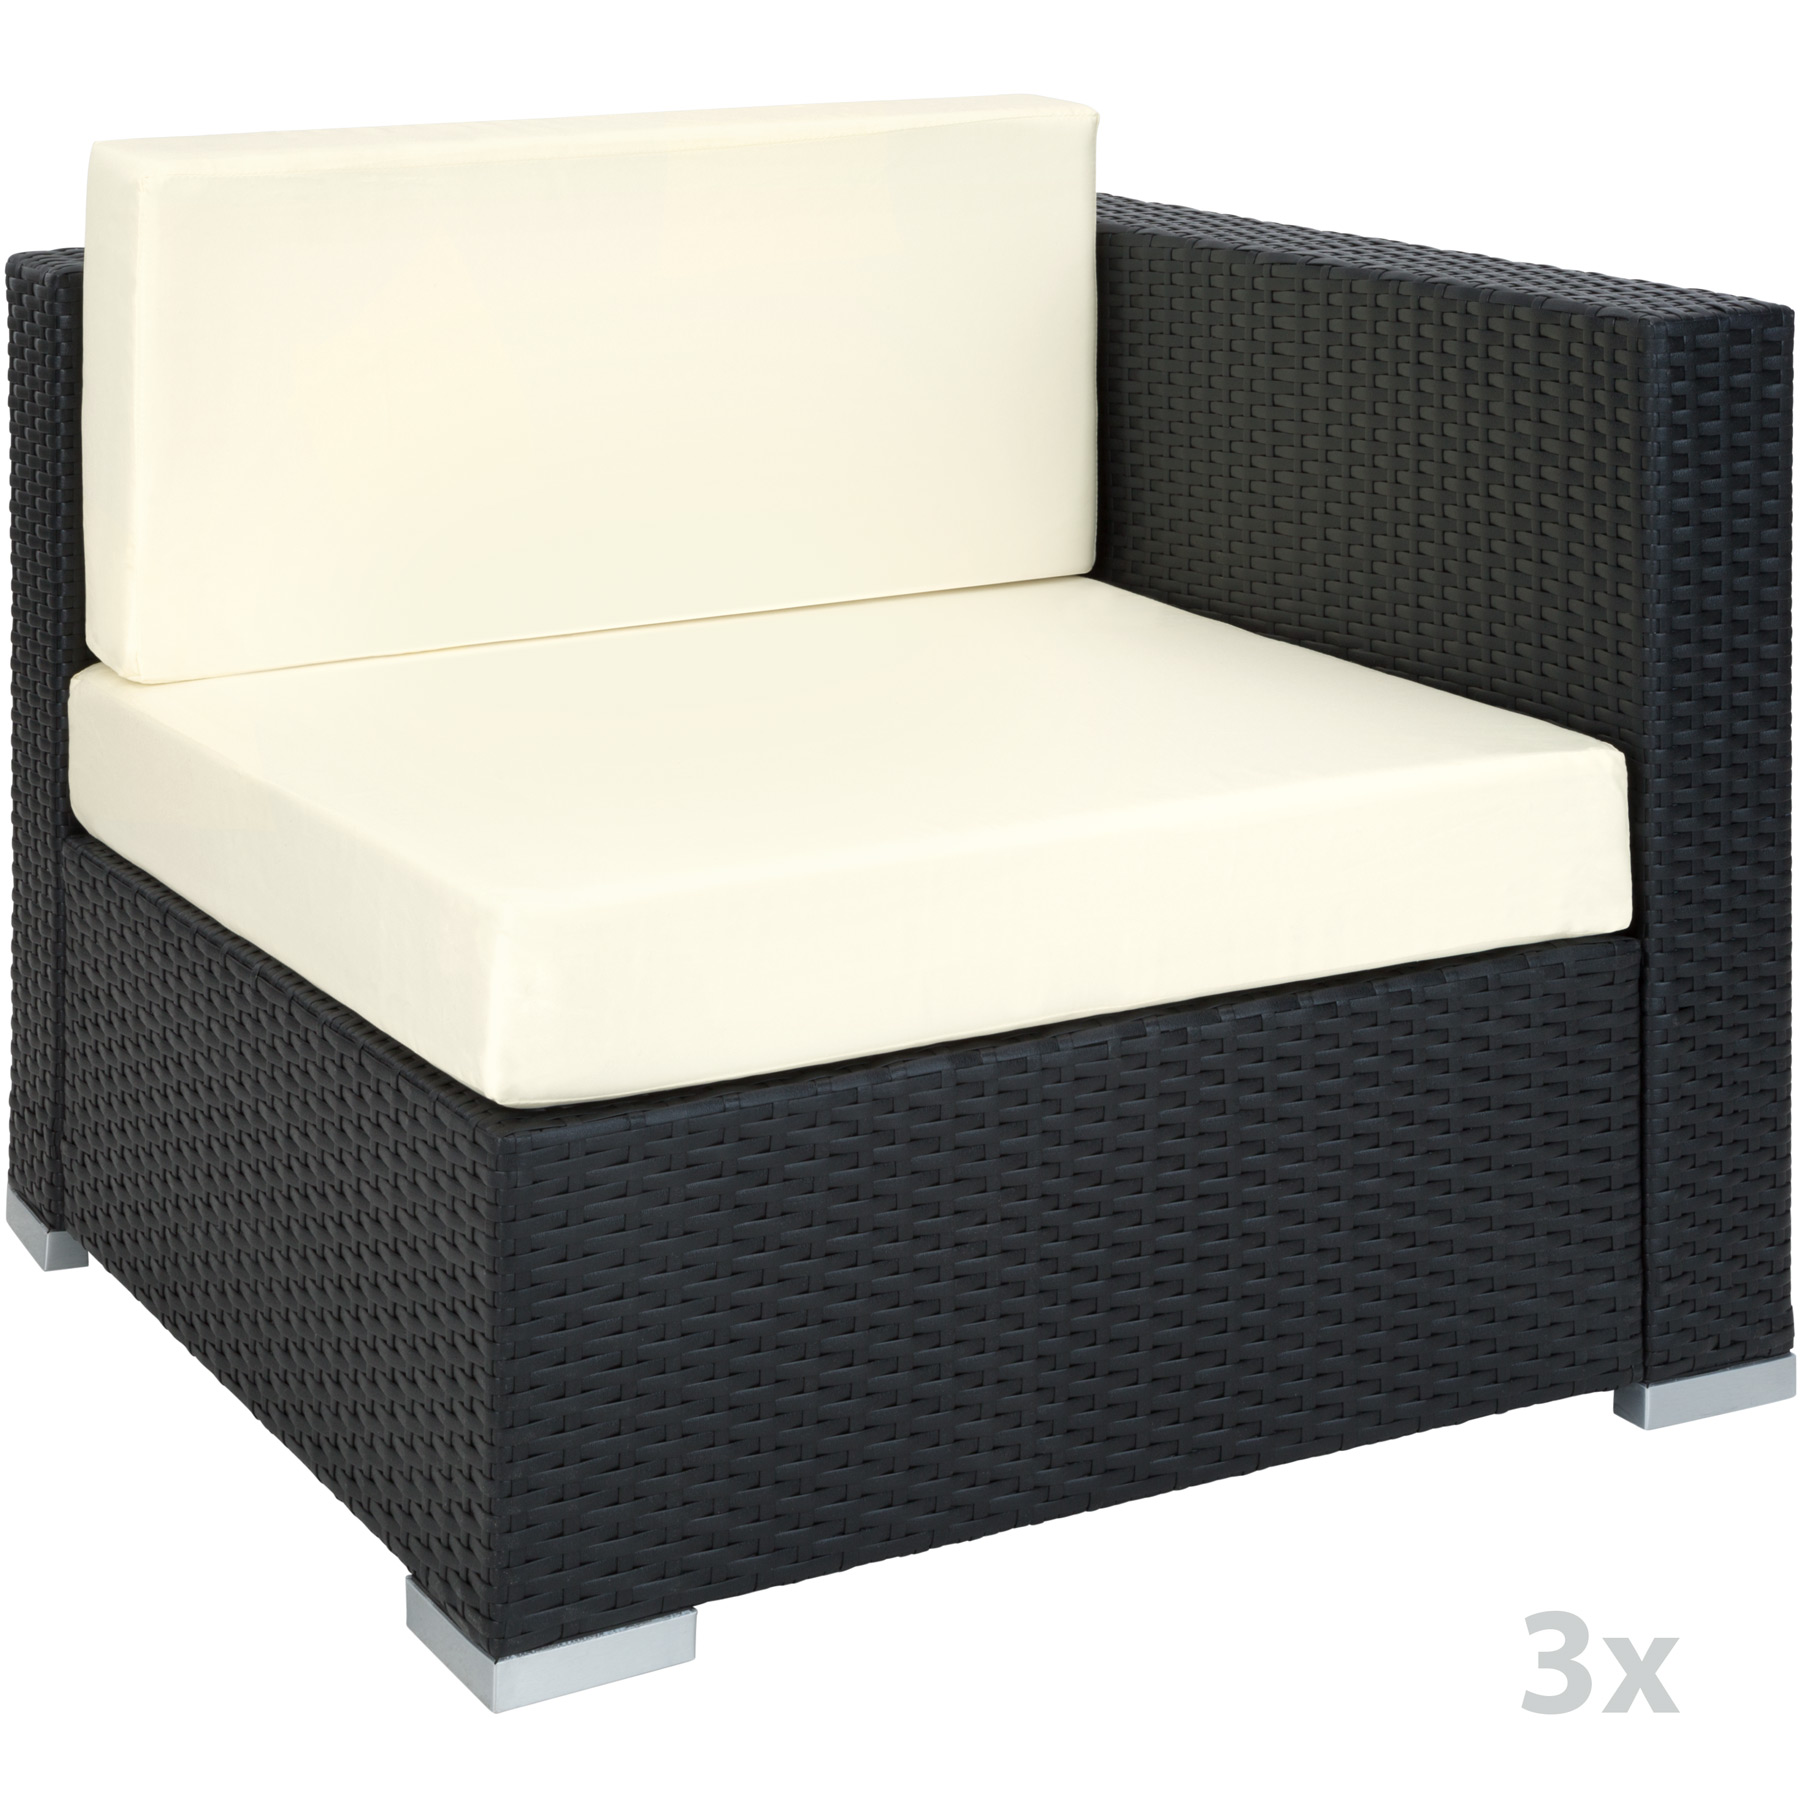 xxl aluminium luxury rattan garden furniture sofa set. Black Bedroom Furniture Sets. Home Design Ideas